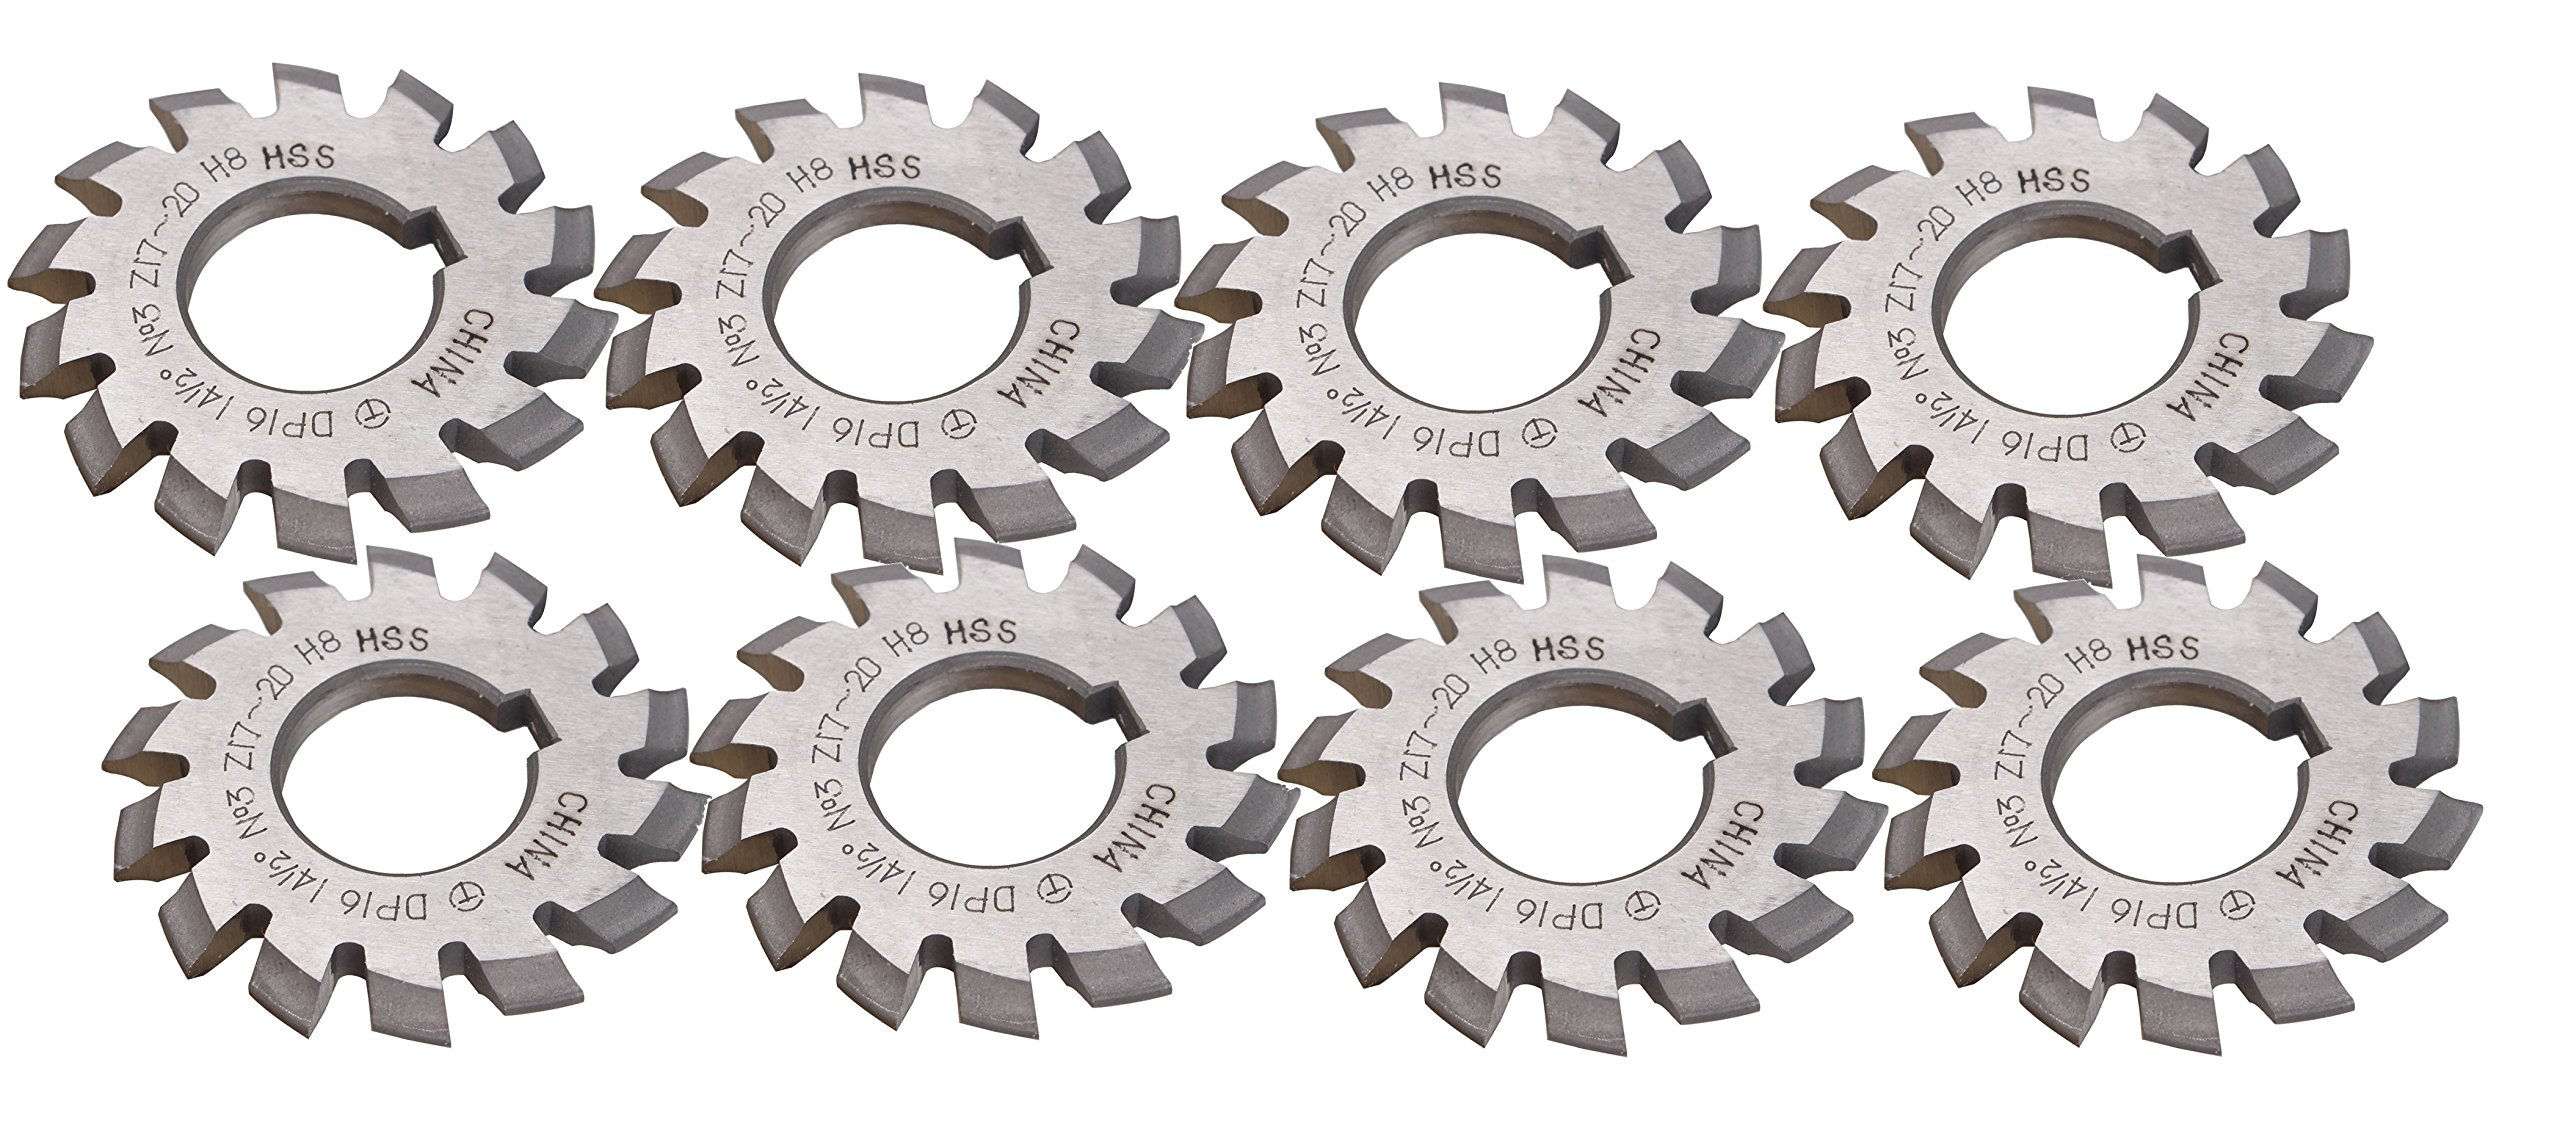 Zowaysoon 8Pcs Set DP12 Involute Gear Cutters PA14-1/2 Bore22 HSS 8H No1-8 Gear Milling Cutter by zowaysoon